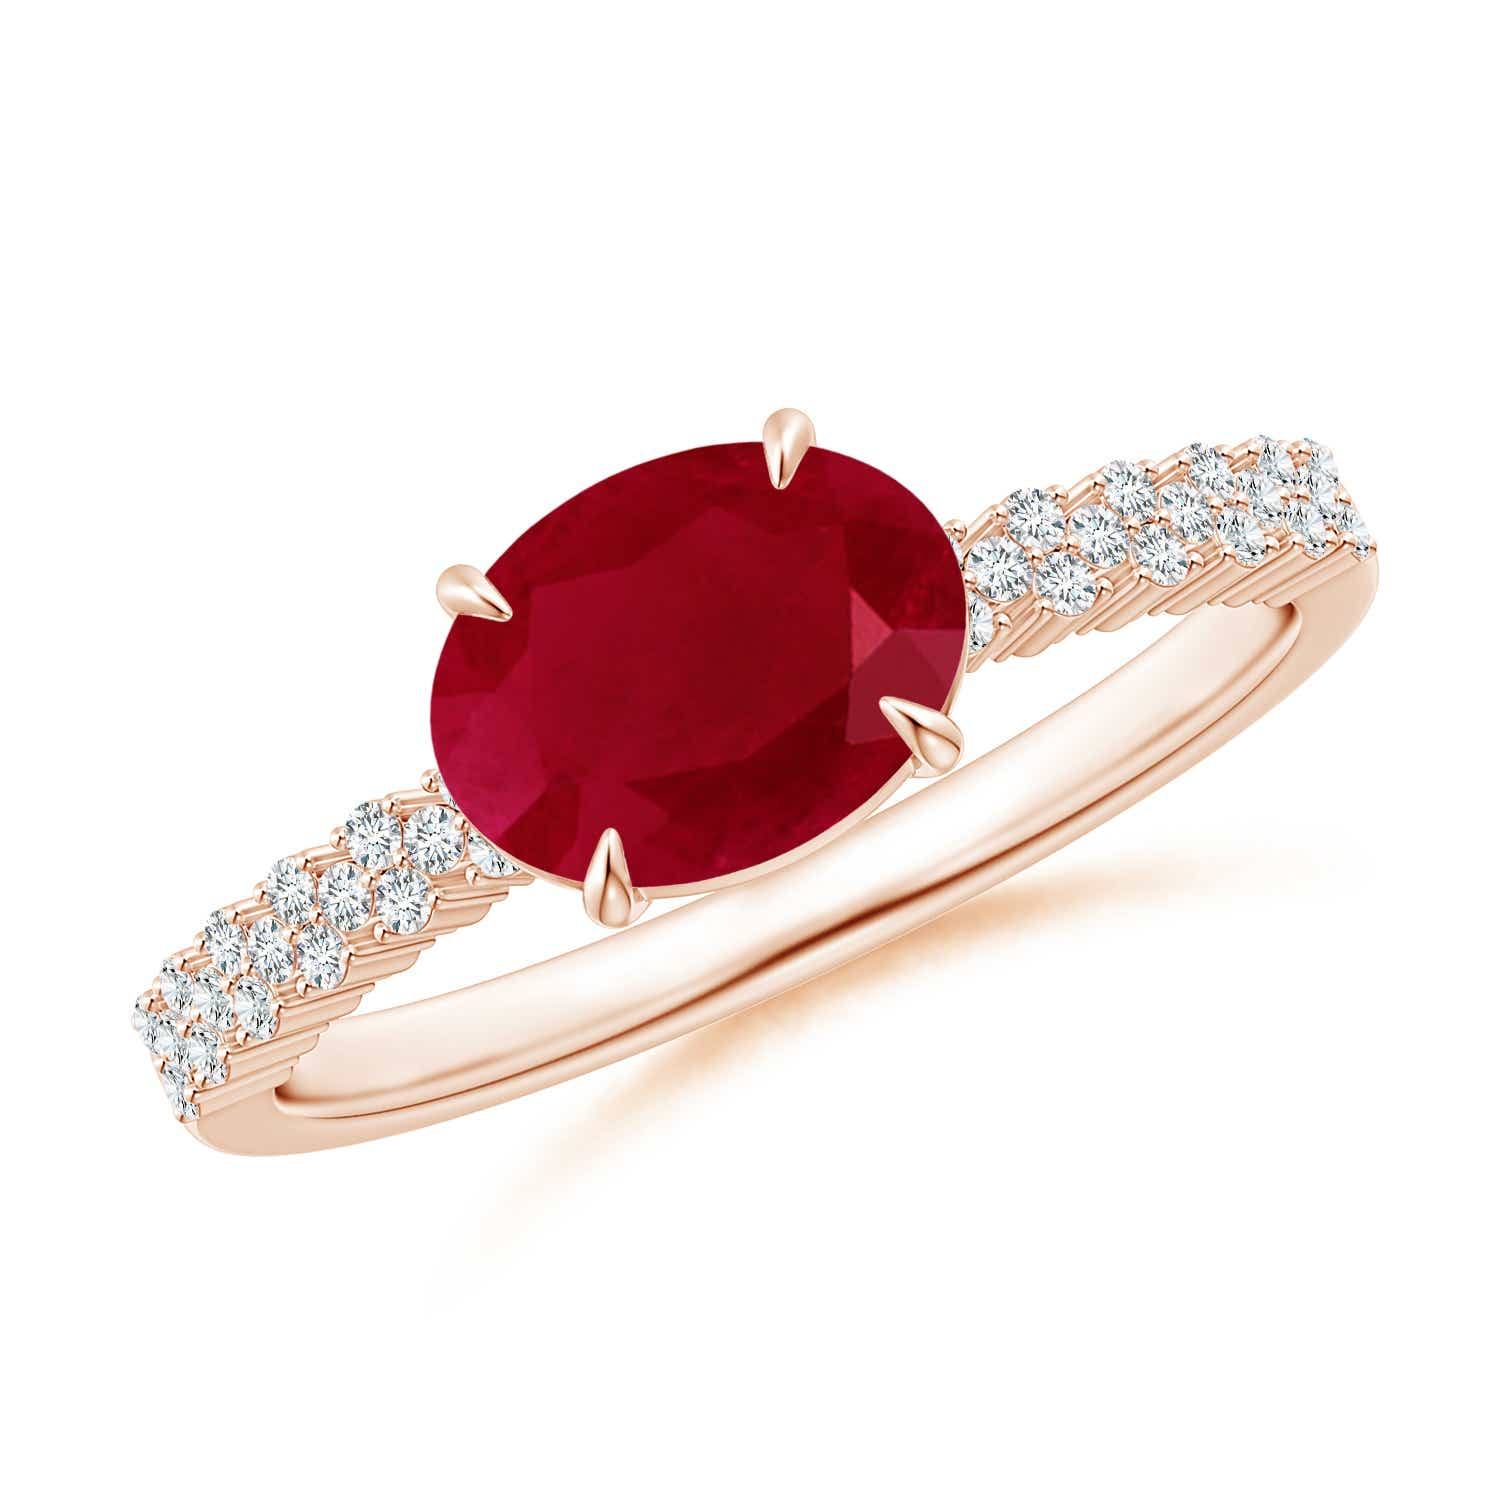 East-West Oval Ruby Ring with Diamonds